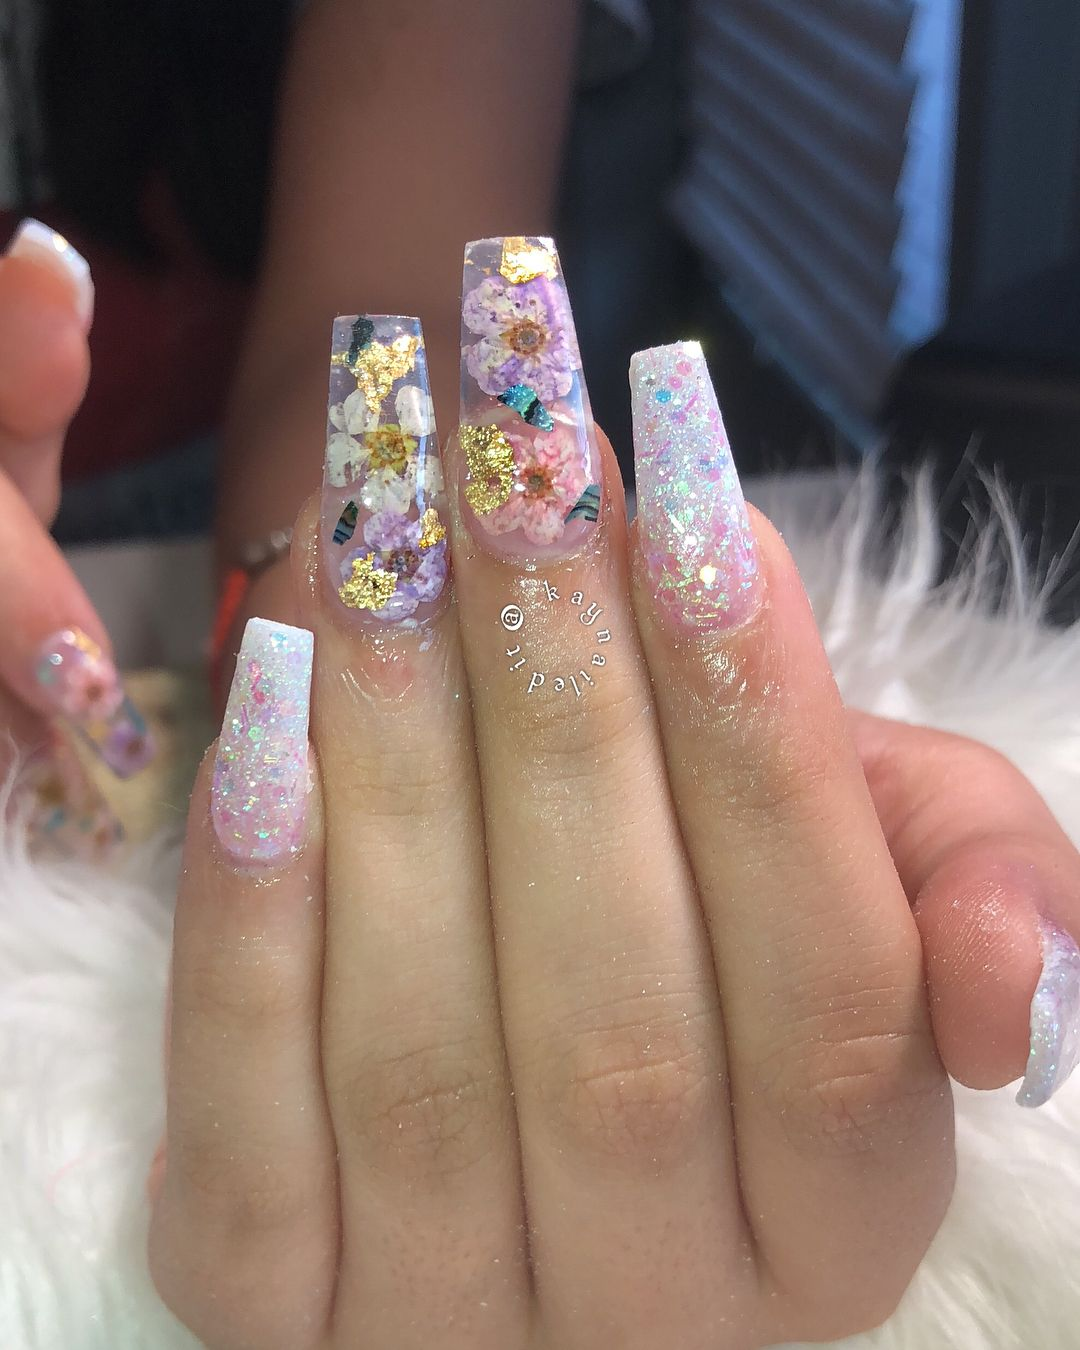 look at how BEAUTIFUL these are #nails #nailfie #dfwnails #nailtech #filipinanailtech #kaynailedit #nailstagram #thenaillife